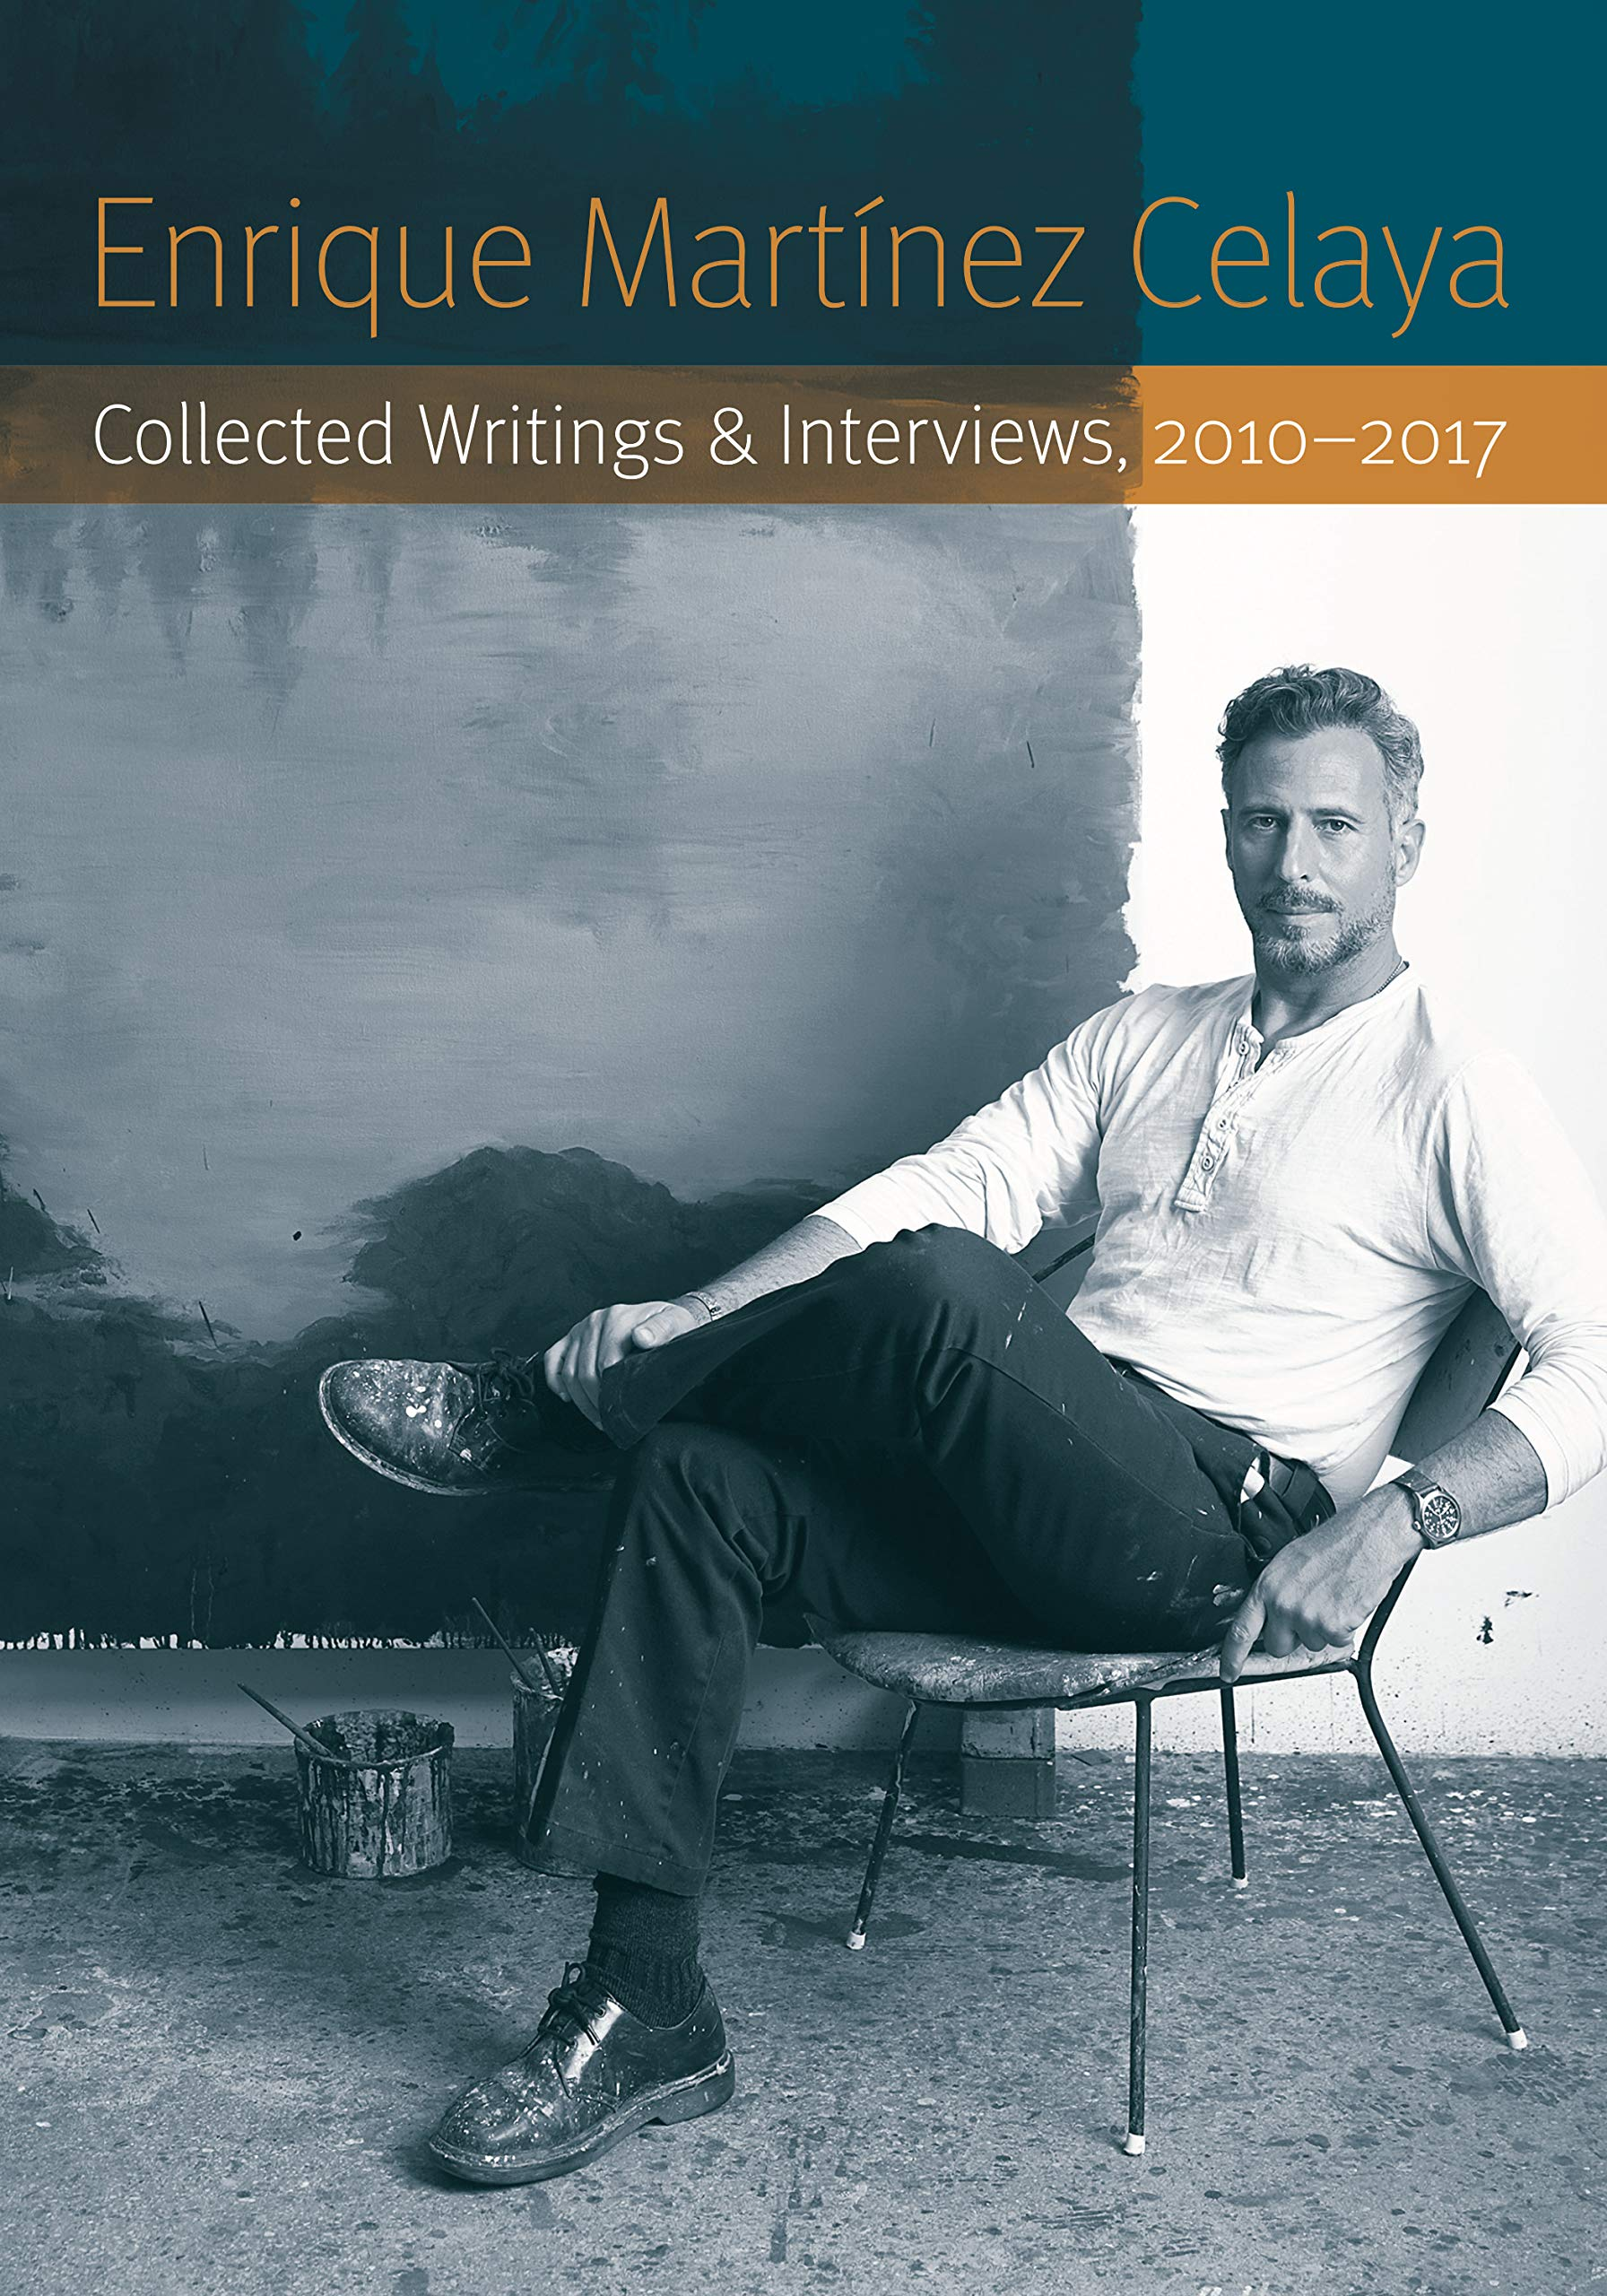 Enrique Martínez Celaya: Collected Writings and